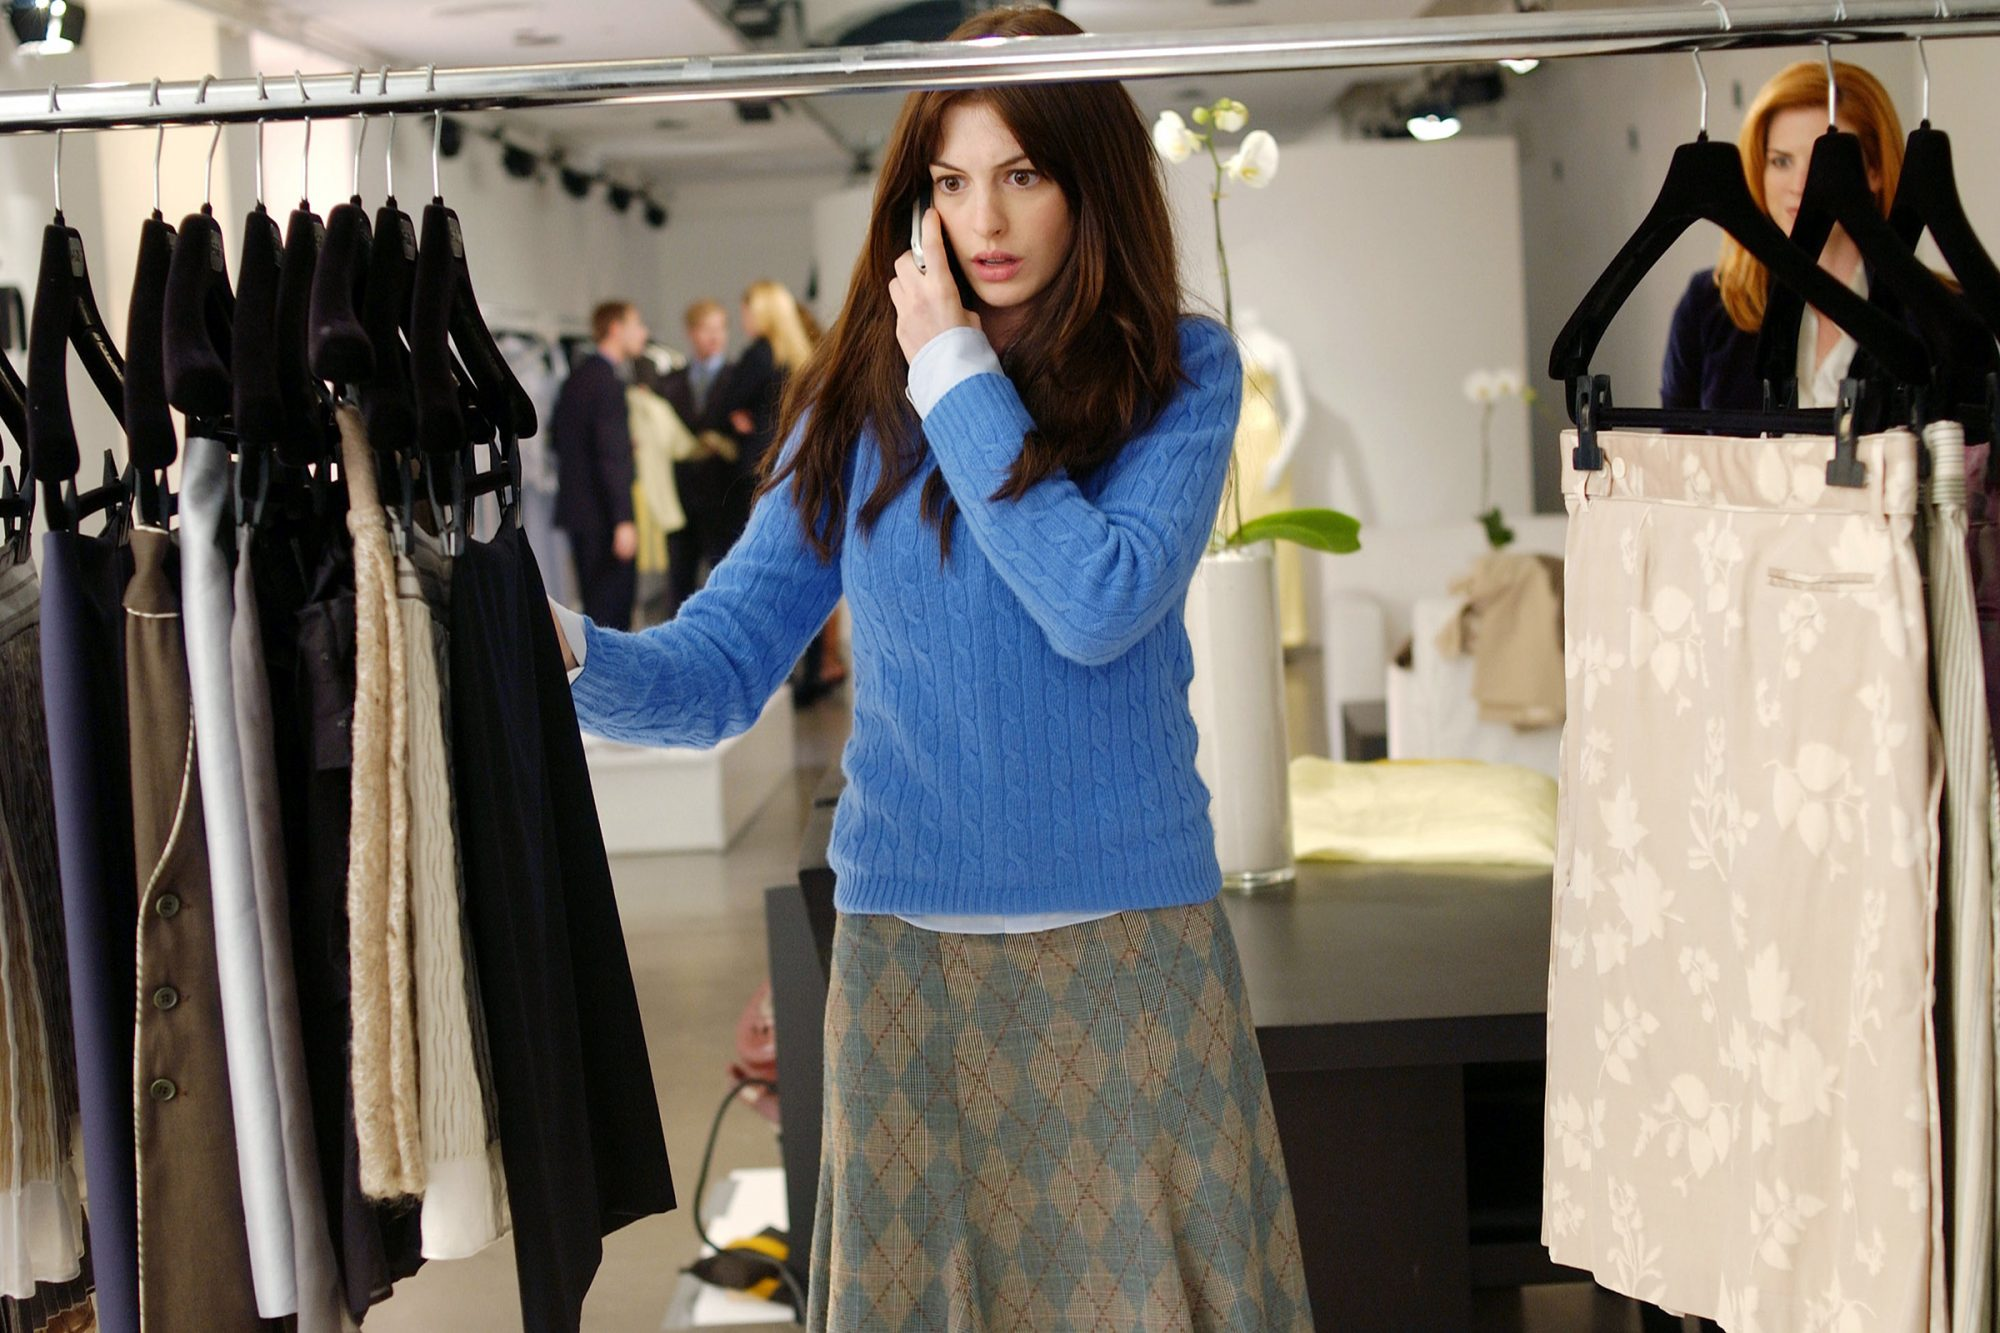 Andy's Sweater in The Devil Wears Prada